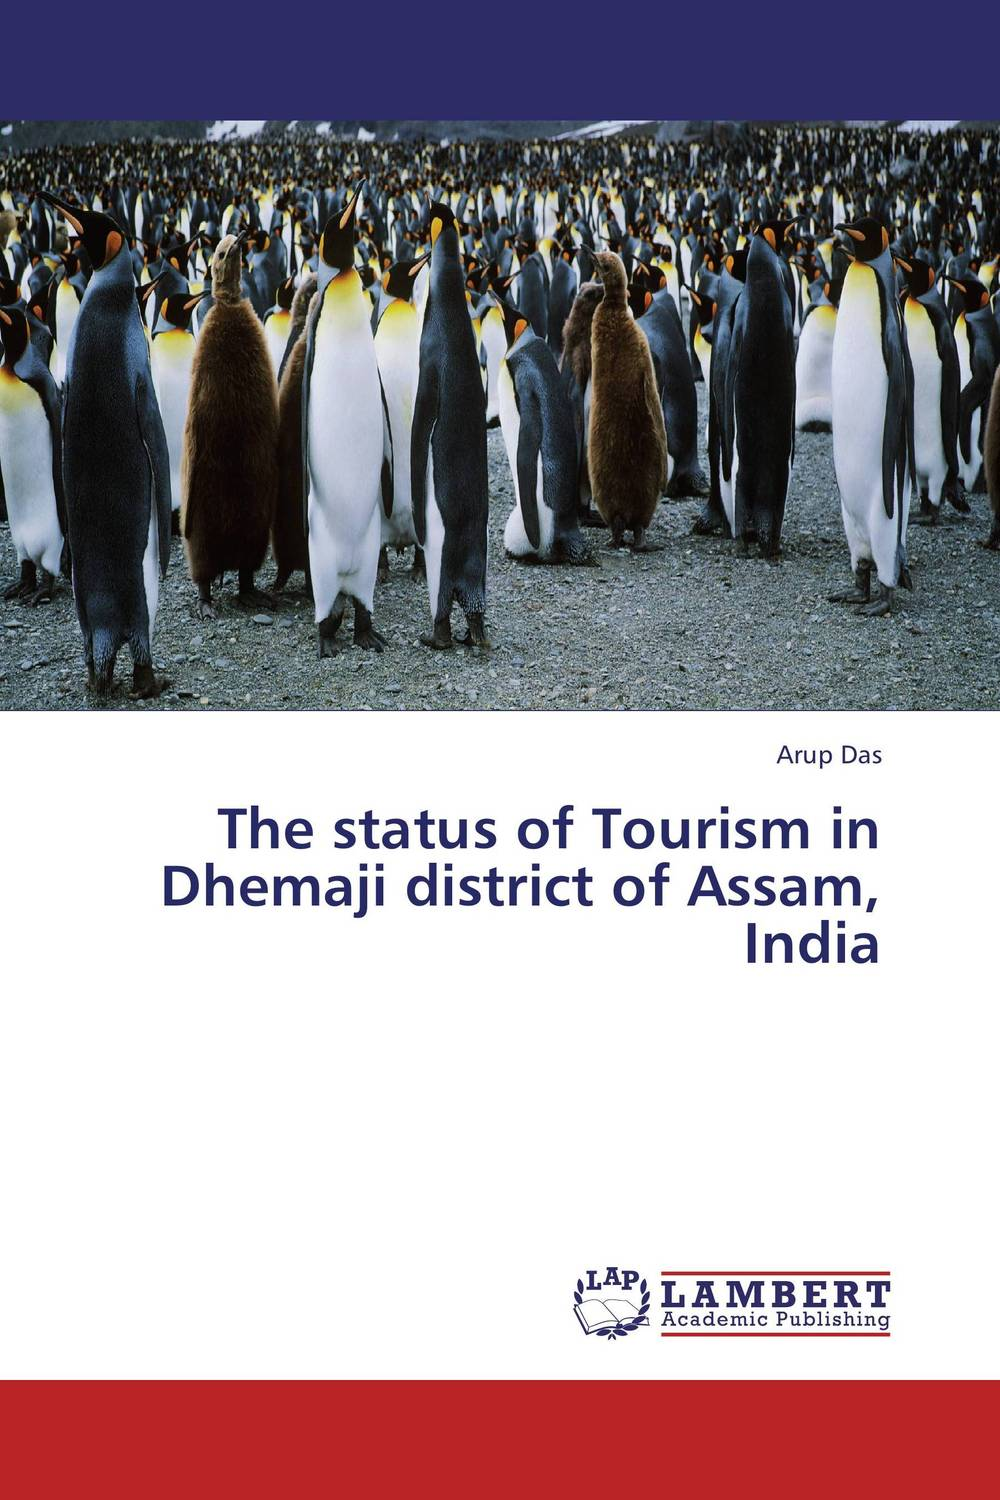 The status of Tourism in Dhemaji district of Assam, India